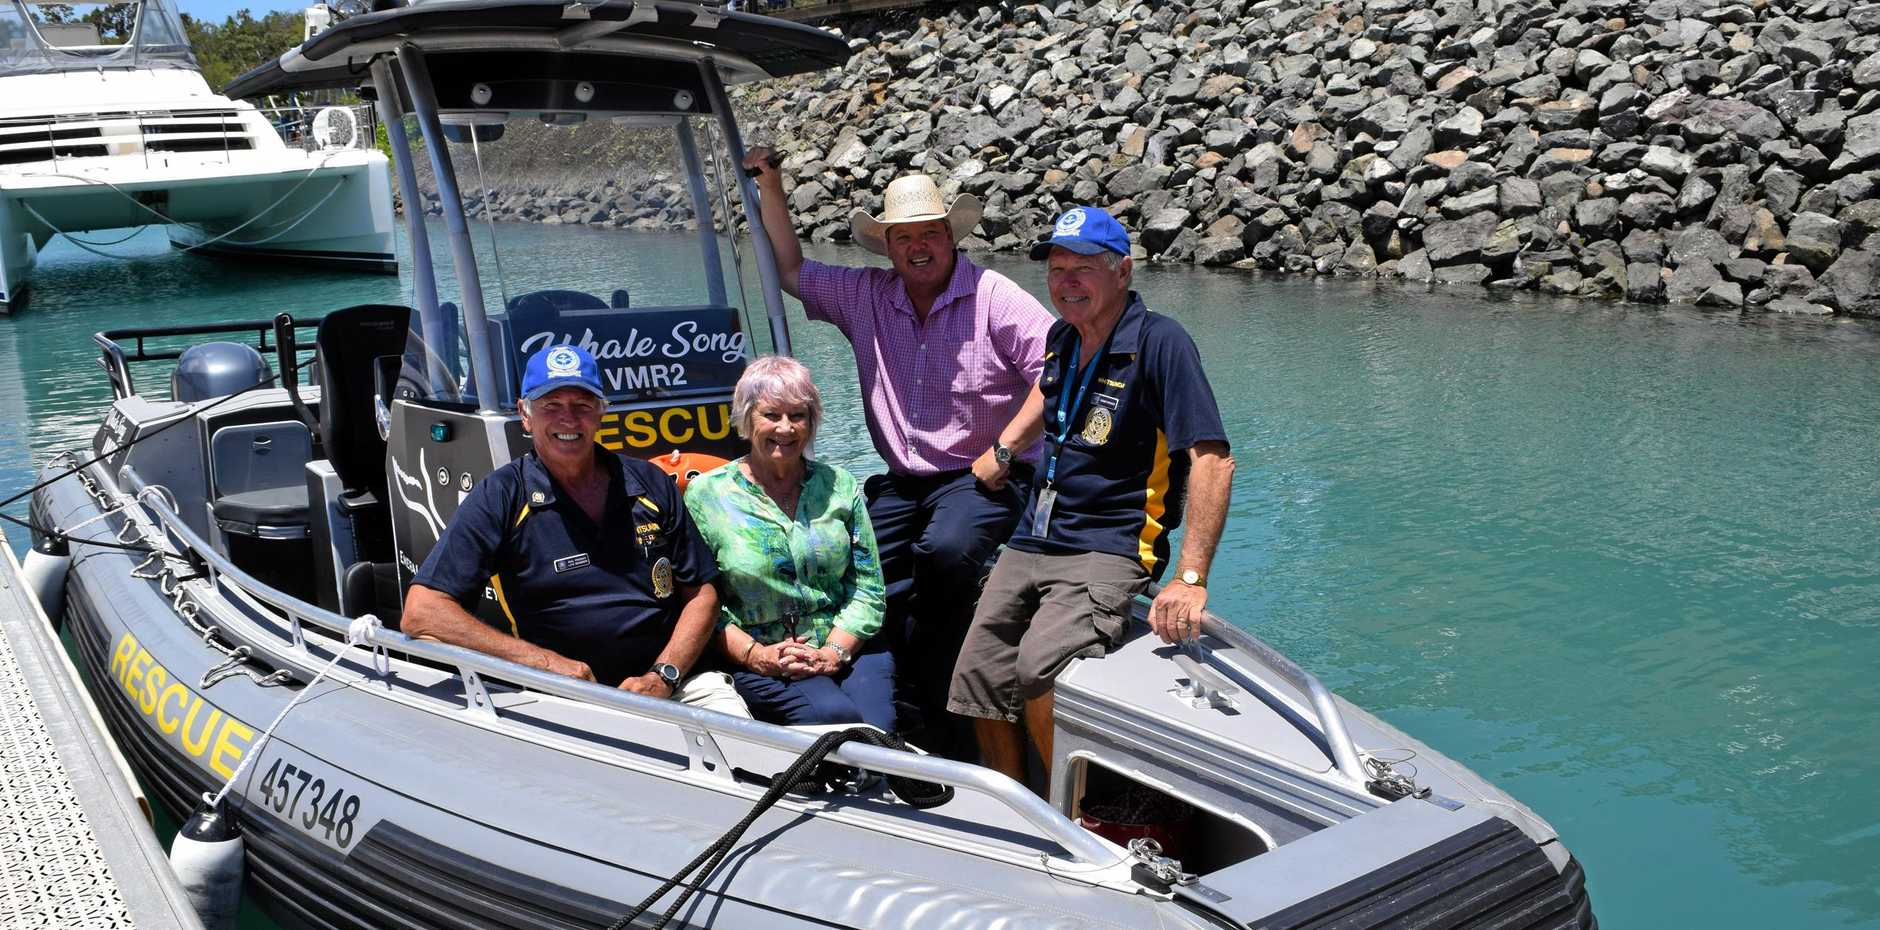 Checking out the new VMR Whitsunday second boat are VMR president Mal Priday, Whitsunday Regional Council's Cr Jan Clifford and Mayor Andrew Willcox with VMR Whitsunday secretary Roger Wodson.